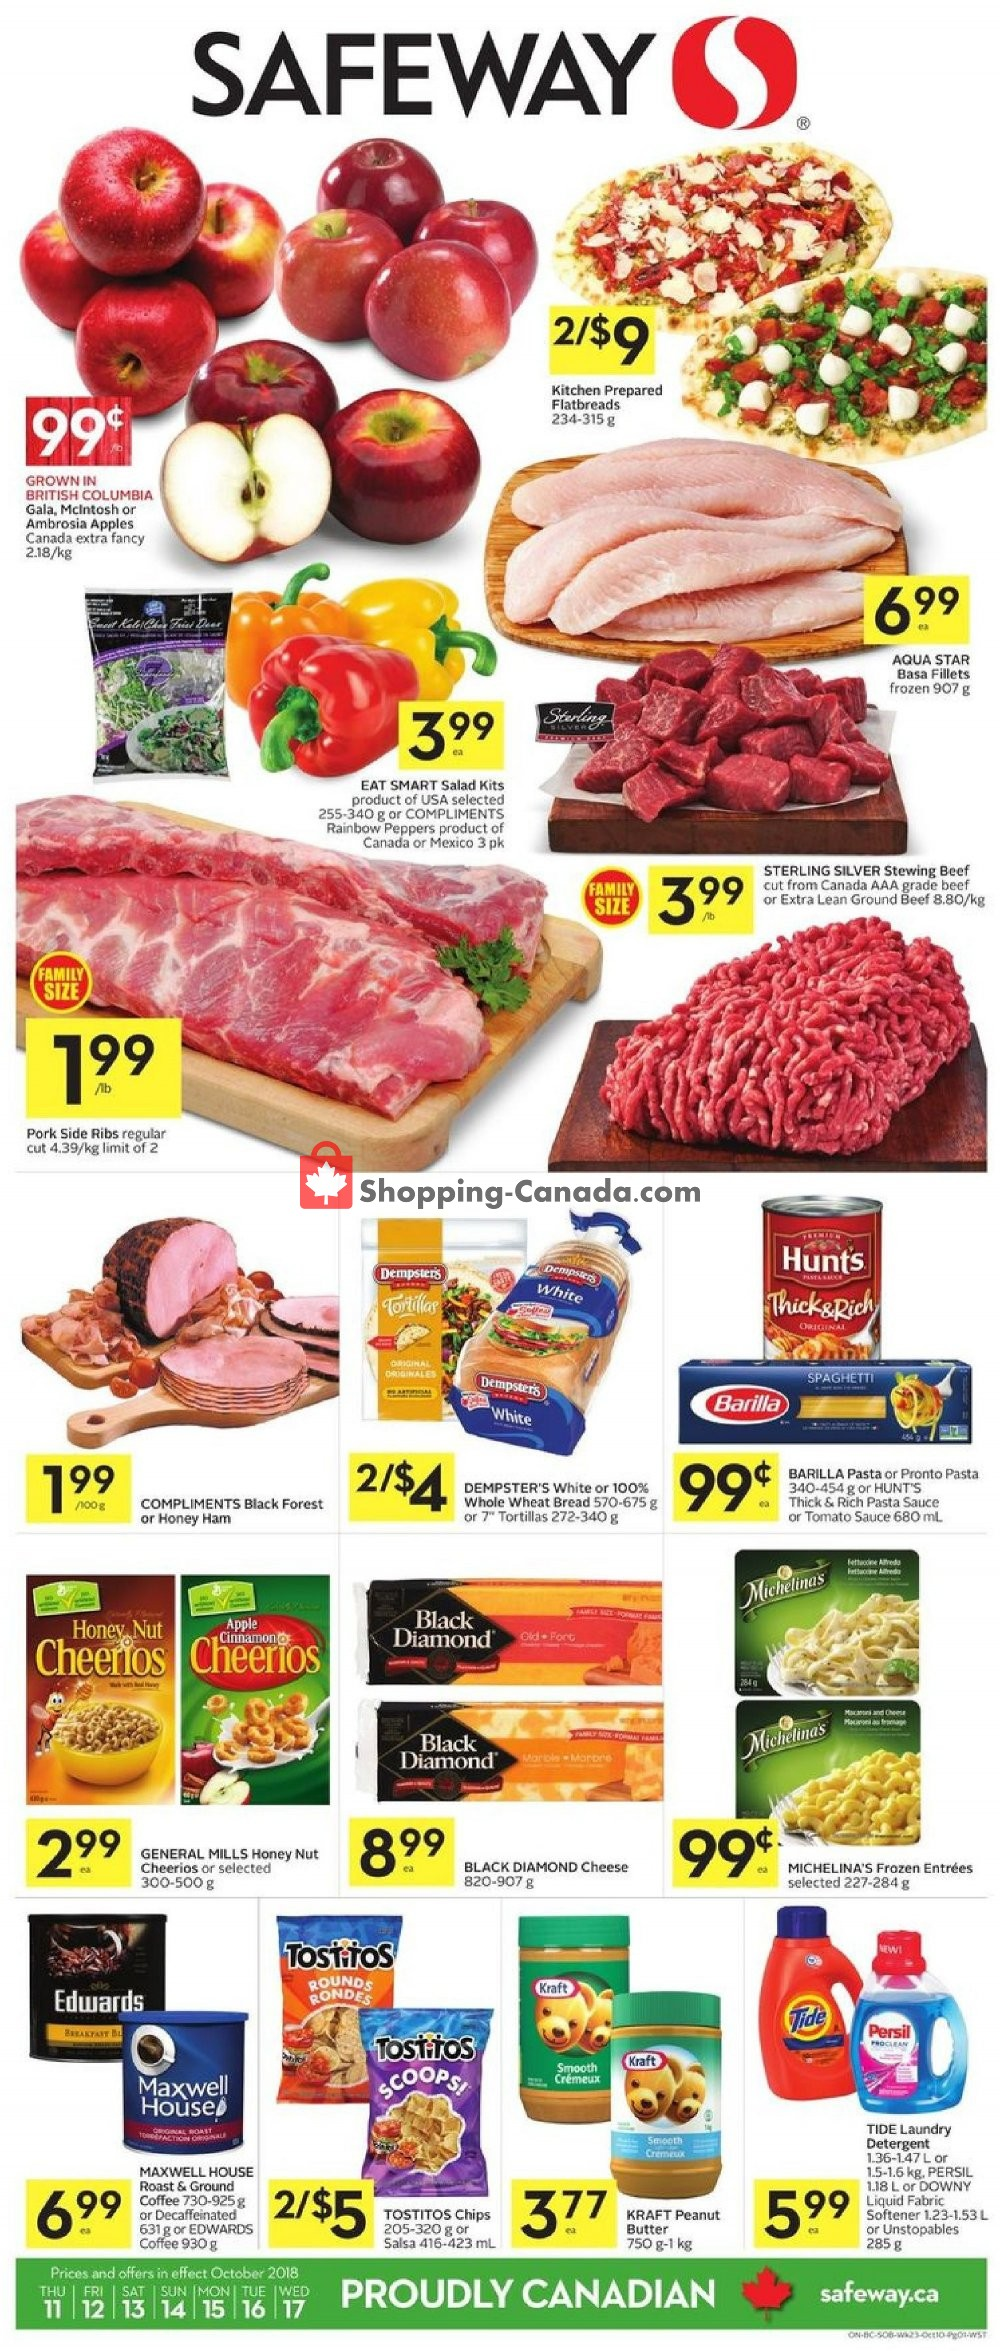 Flyer Safeway Canada - from Thursday October 11, 2018 to Wednesday October 17, 2018